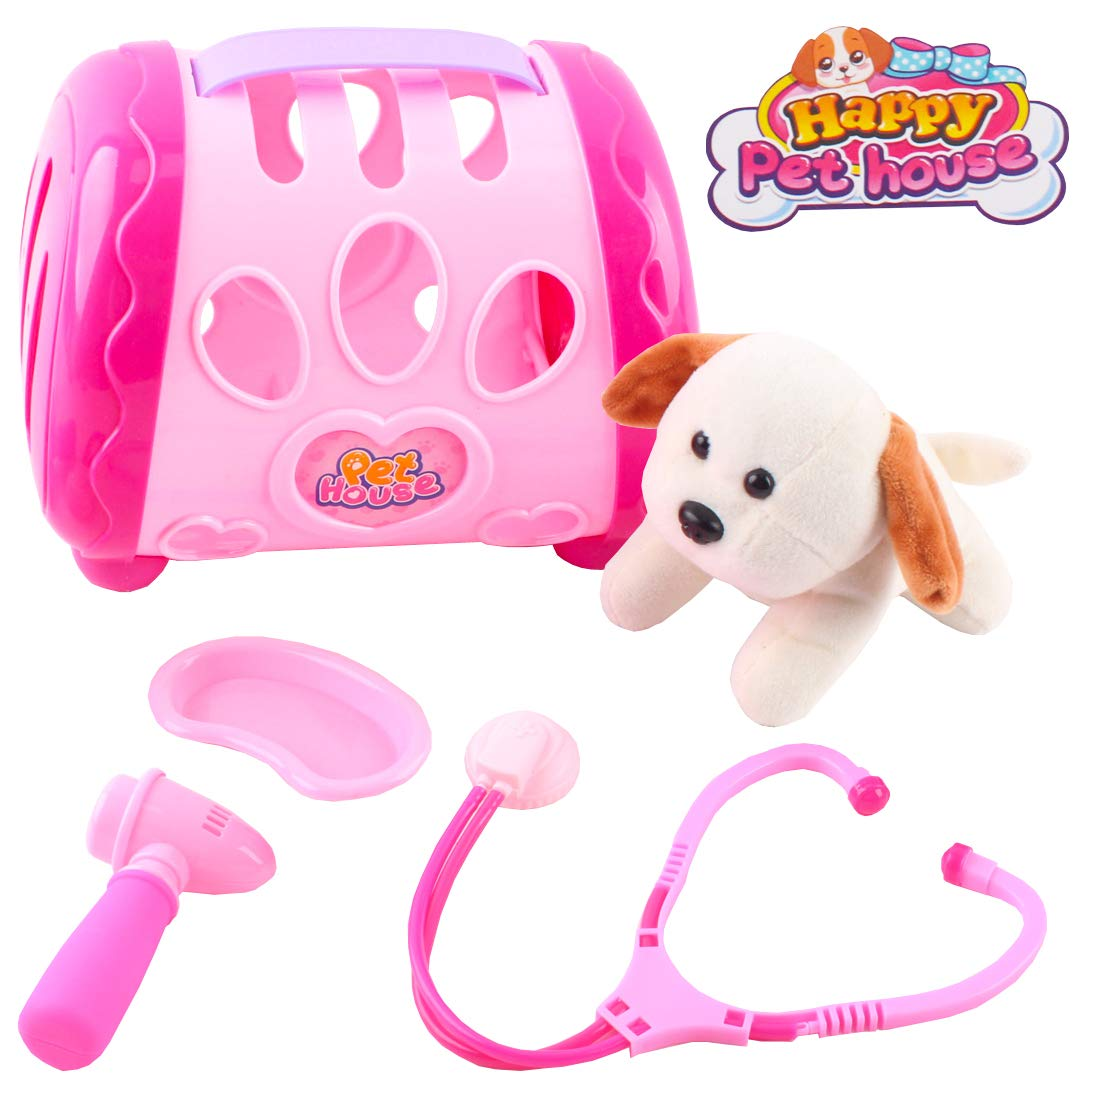 deAO Toys Happy Pet House Vet Animal Doctor Role Play Set with Accessories (Pink)